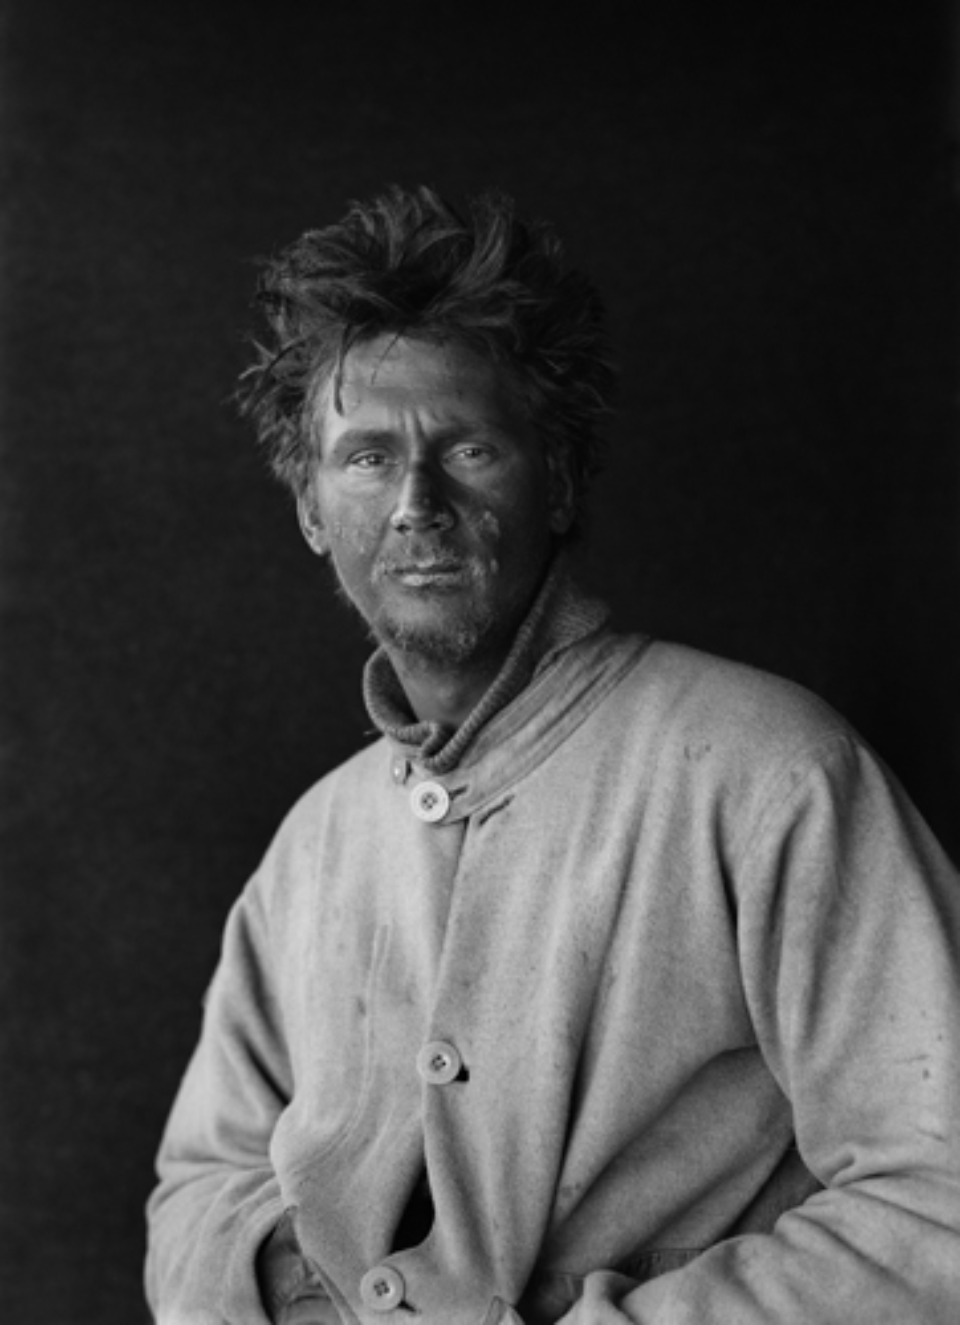 Herbert G. Ponting: C.S. Wright on return from the Barrier 29.01.1912 Embossed on recto, numbered on verso Modern Platinum palladium print Ed. of 30